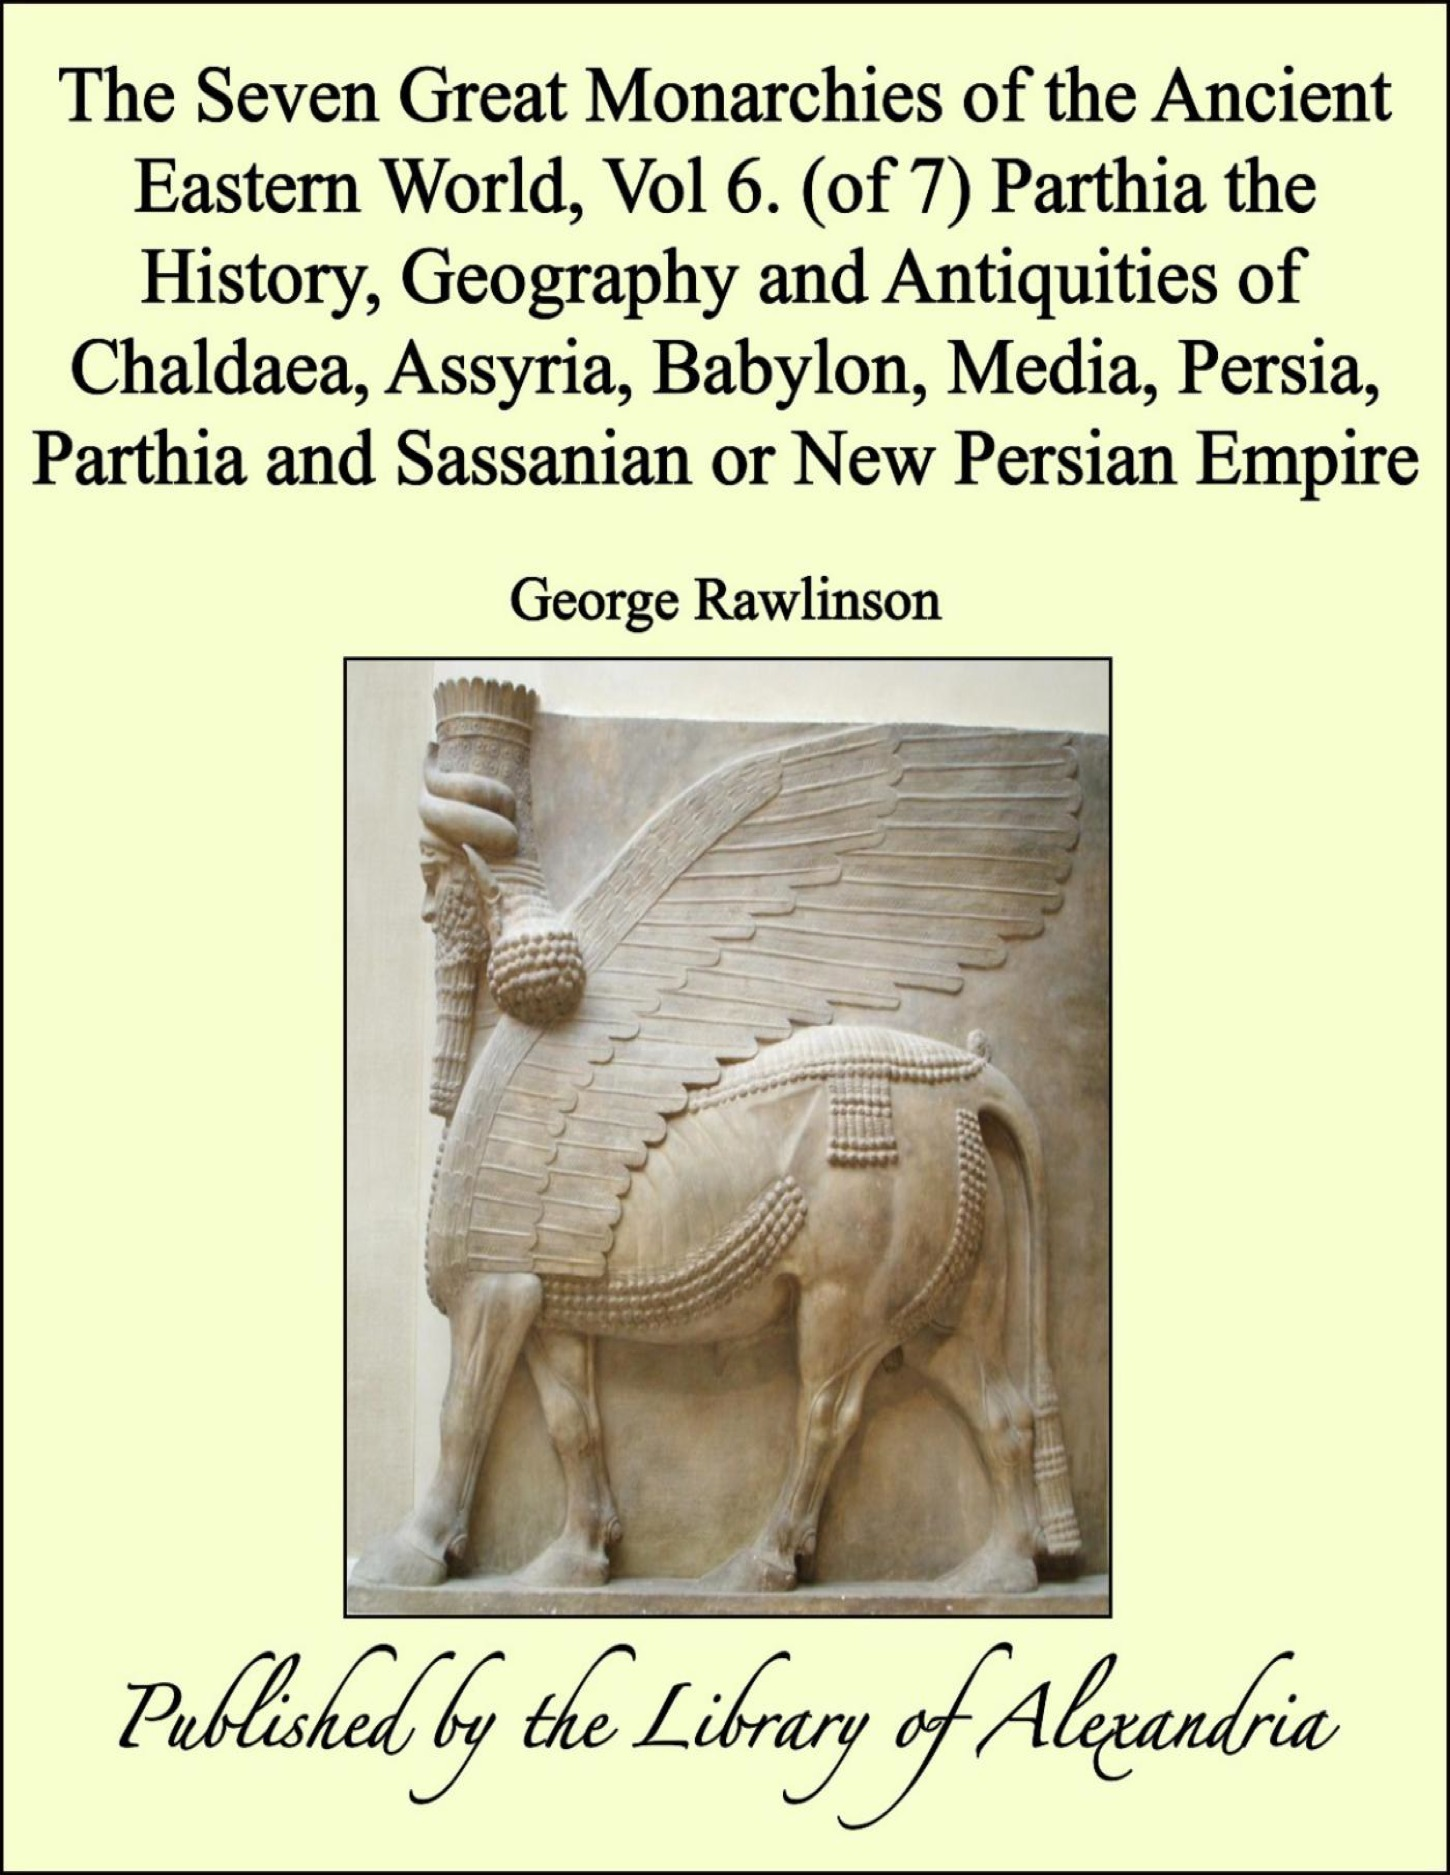 The Seven Great Monarchies of The Ancient Eastern World, Vol 6. (of 7): Parthia The History, Geography and Antiquities of Chaldaea, Assyria, Babylon, Media, Persia, Parthia and Sassanian or New Persian Empire By: George Rawlinson